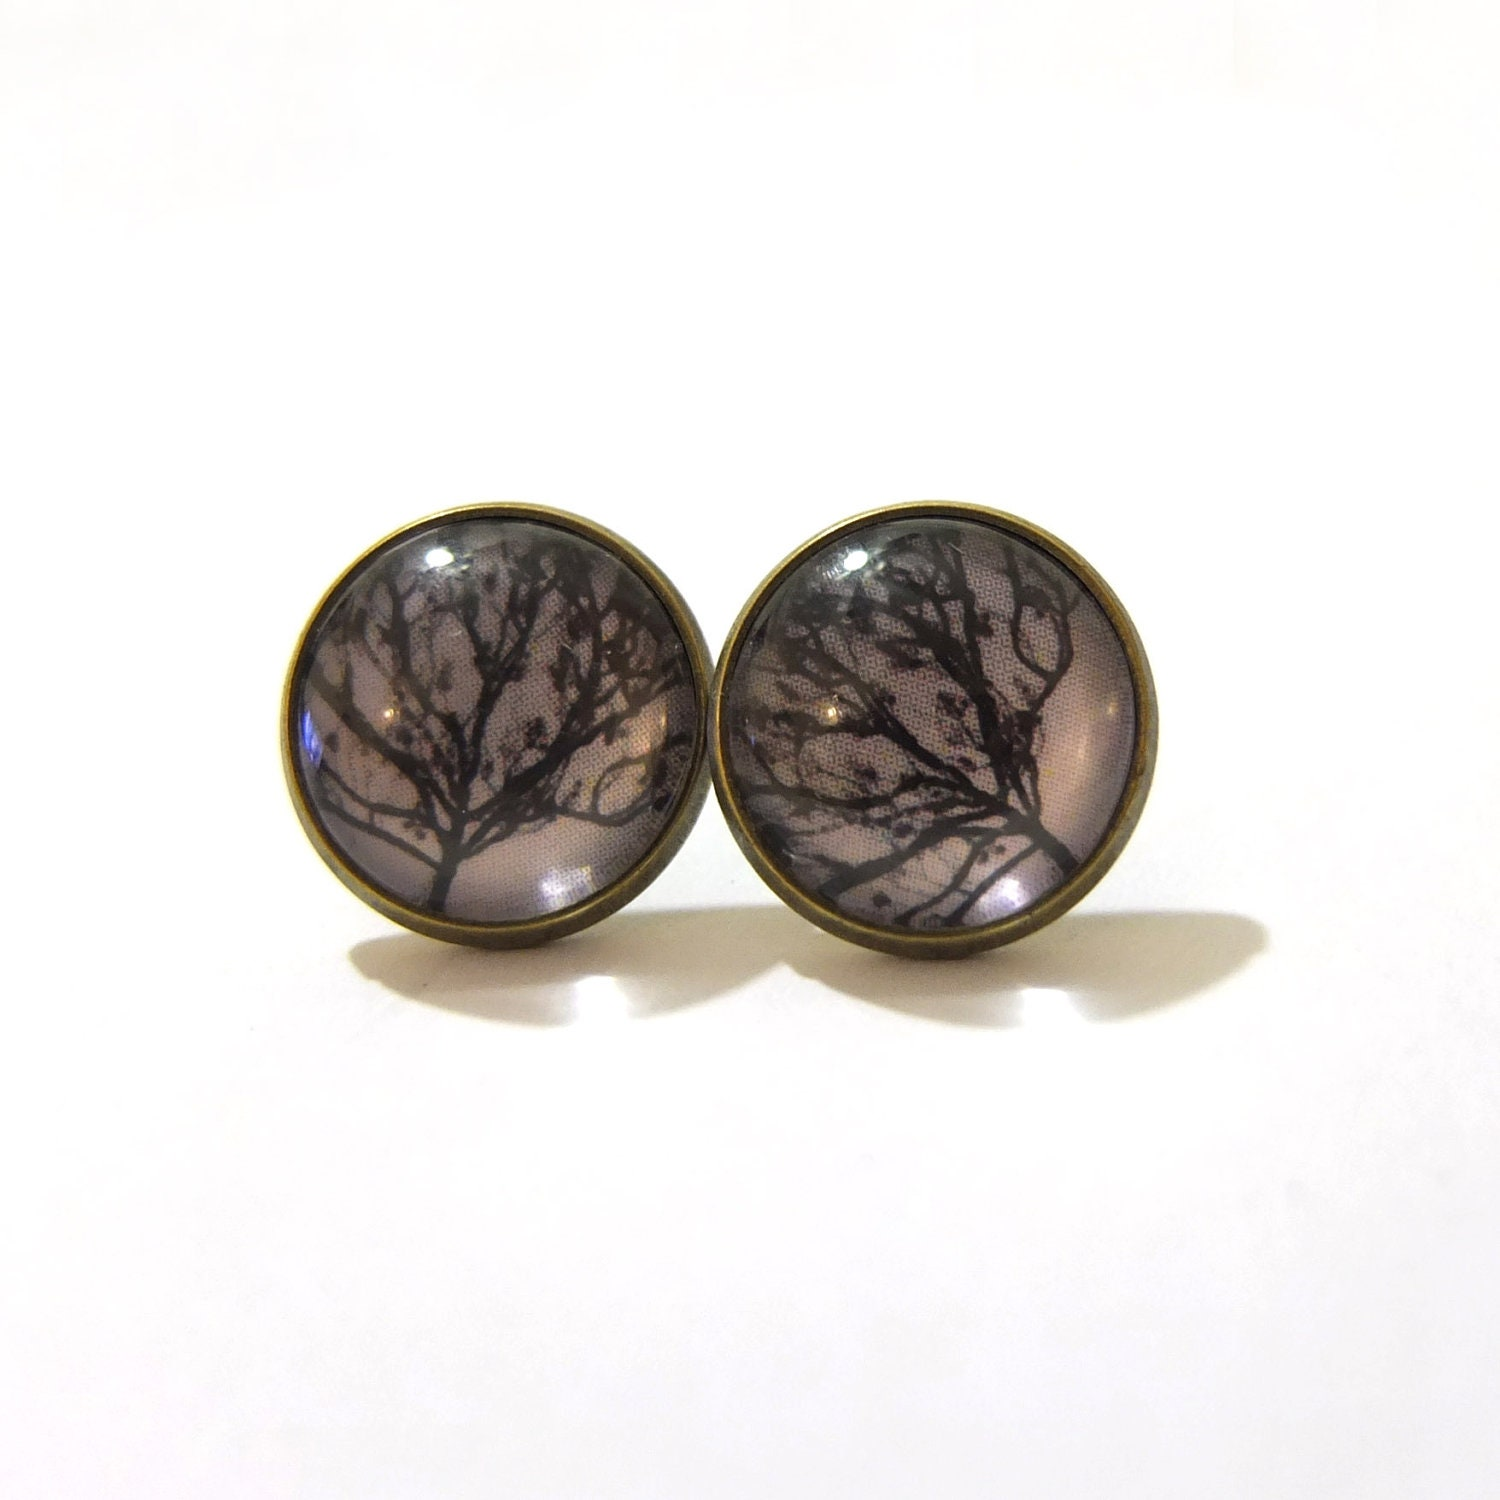 Stud Earrings - Willow Tree,Brown, Fall, Winter, Tree Silhouette, Nature, Bronze, Post Earrings, Earrings Stud, Simple, Modern, Chic